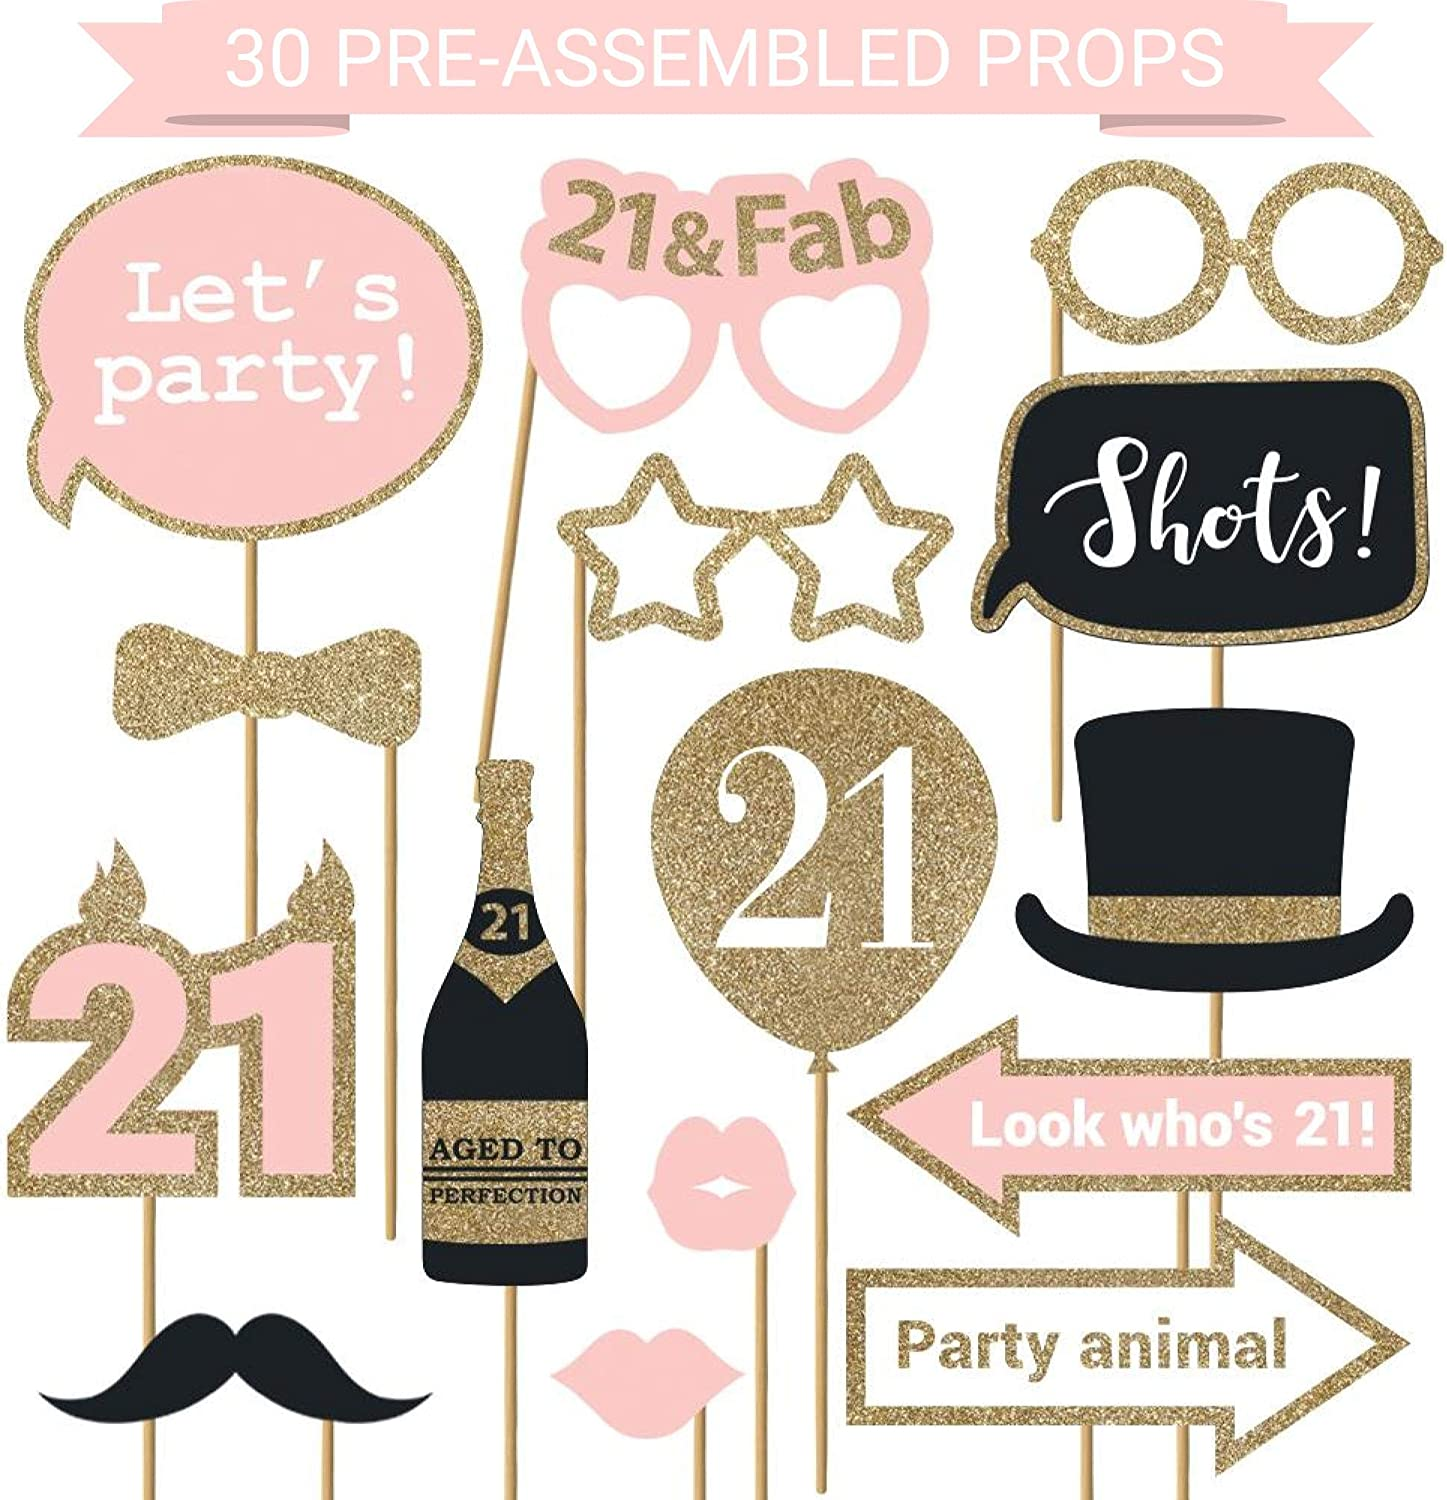 Fully Assembled 21st Birthday Photo Booth Props - Set of 30 - Pink & Gold Selfie Signs - 21st Party Supplies & Decorations - Cute 21st Bday Designs with Real Glitter - Did we mention no DIY?